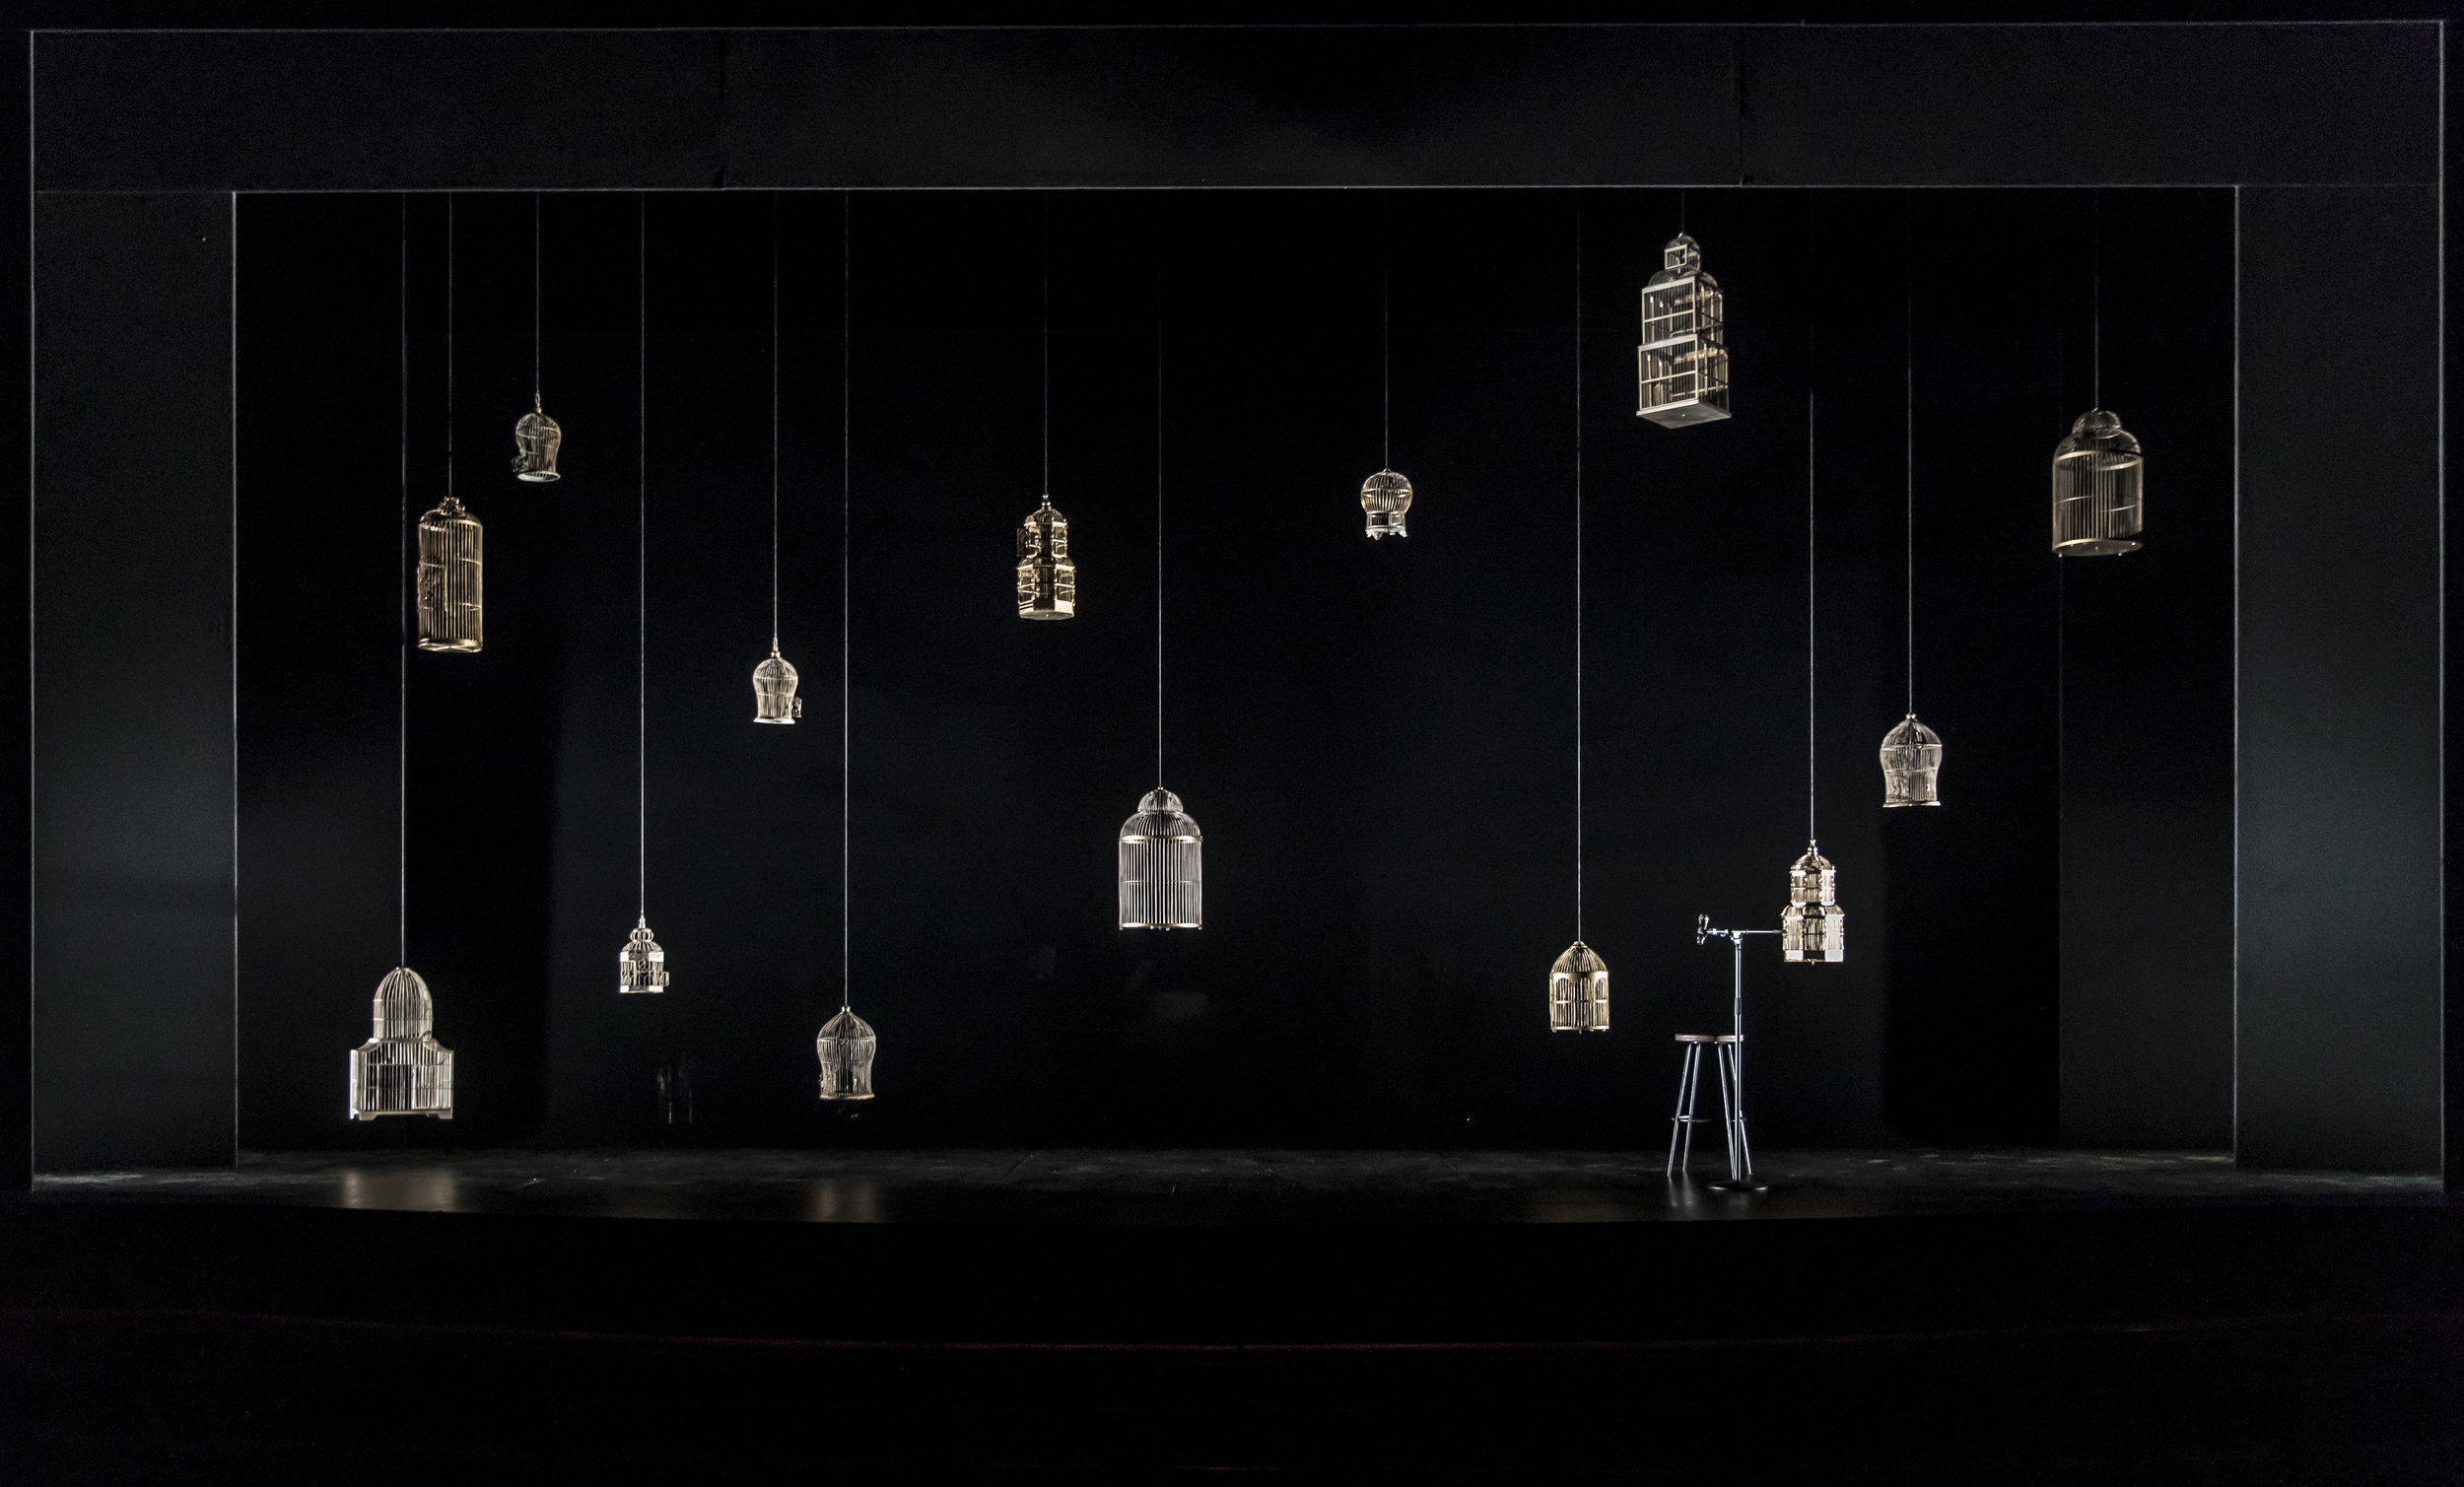 The production set designed by Kevin Depinet for the world premiere of David Cale's solo musical memoir We're Only Alive for A Short Amount of Time.